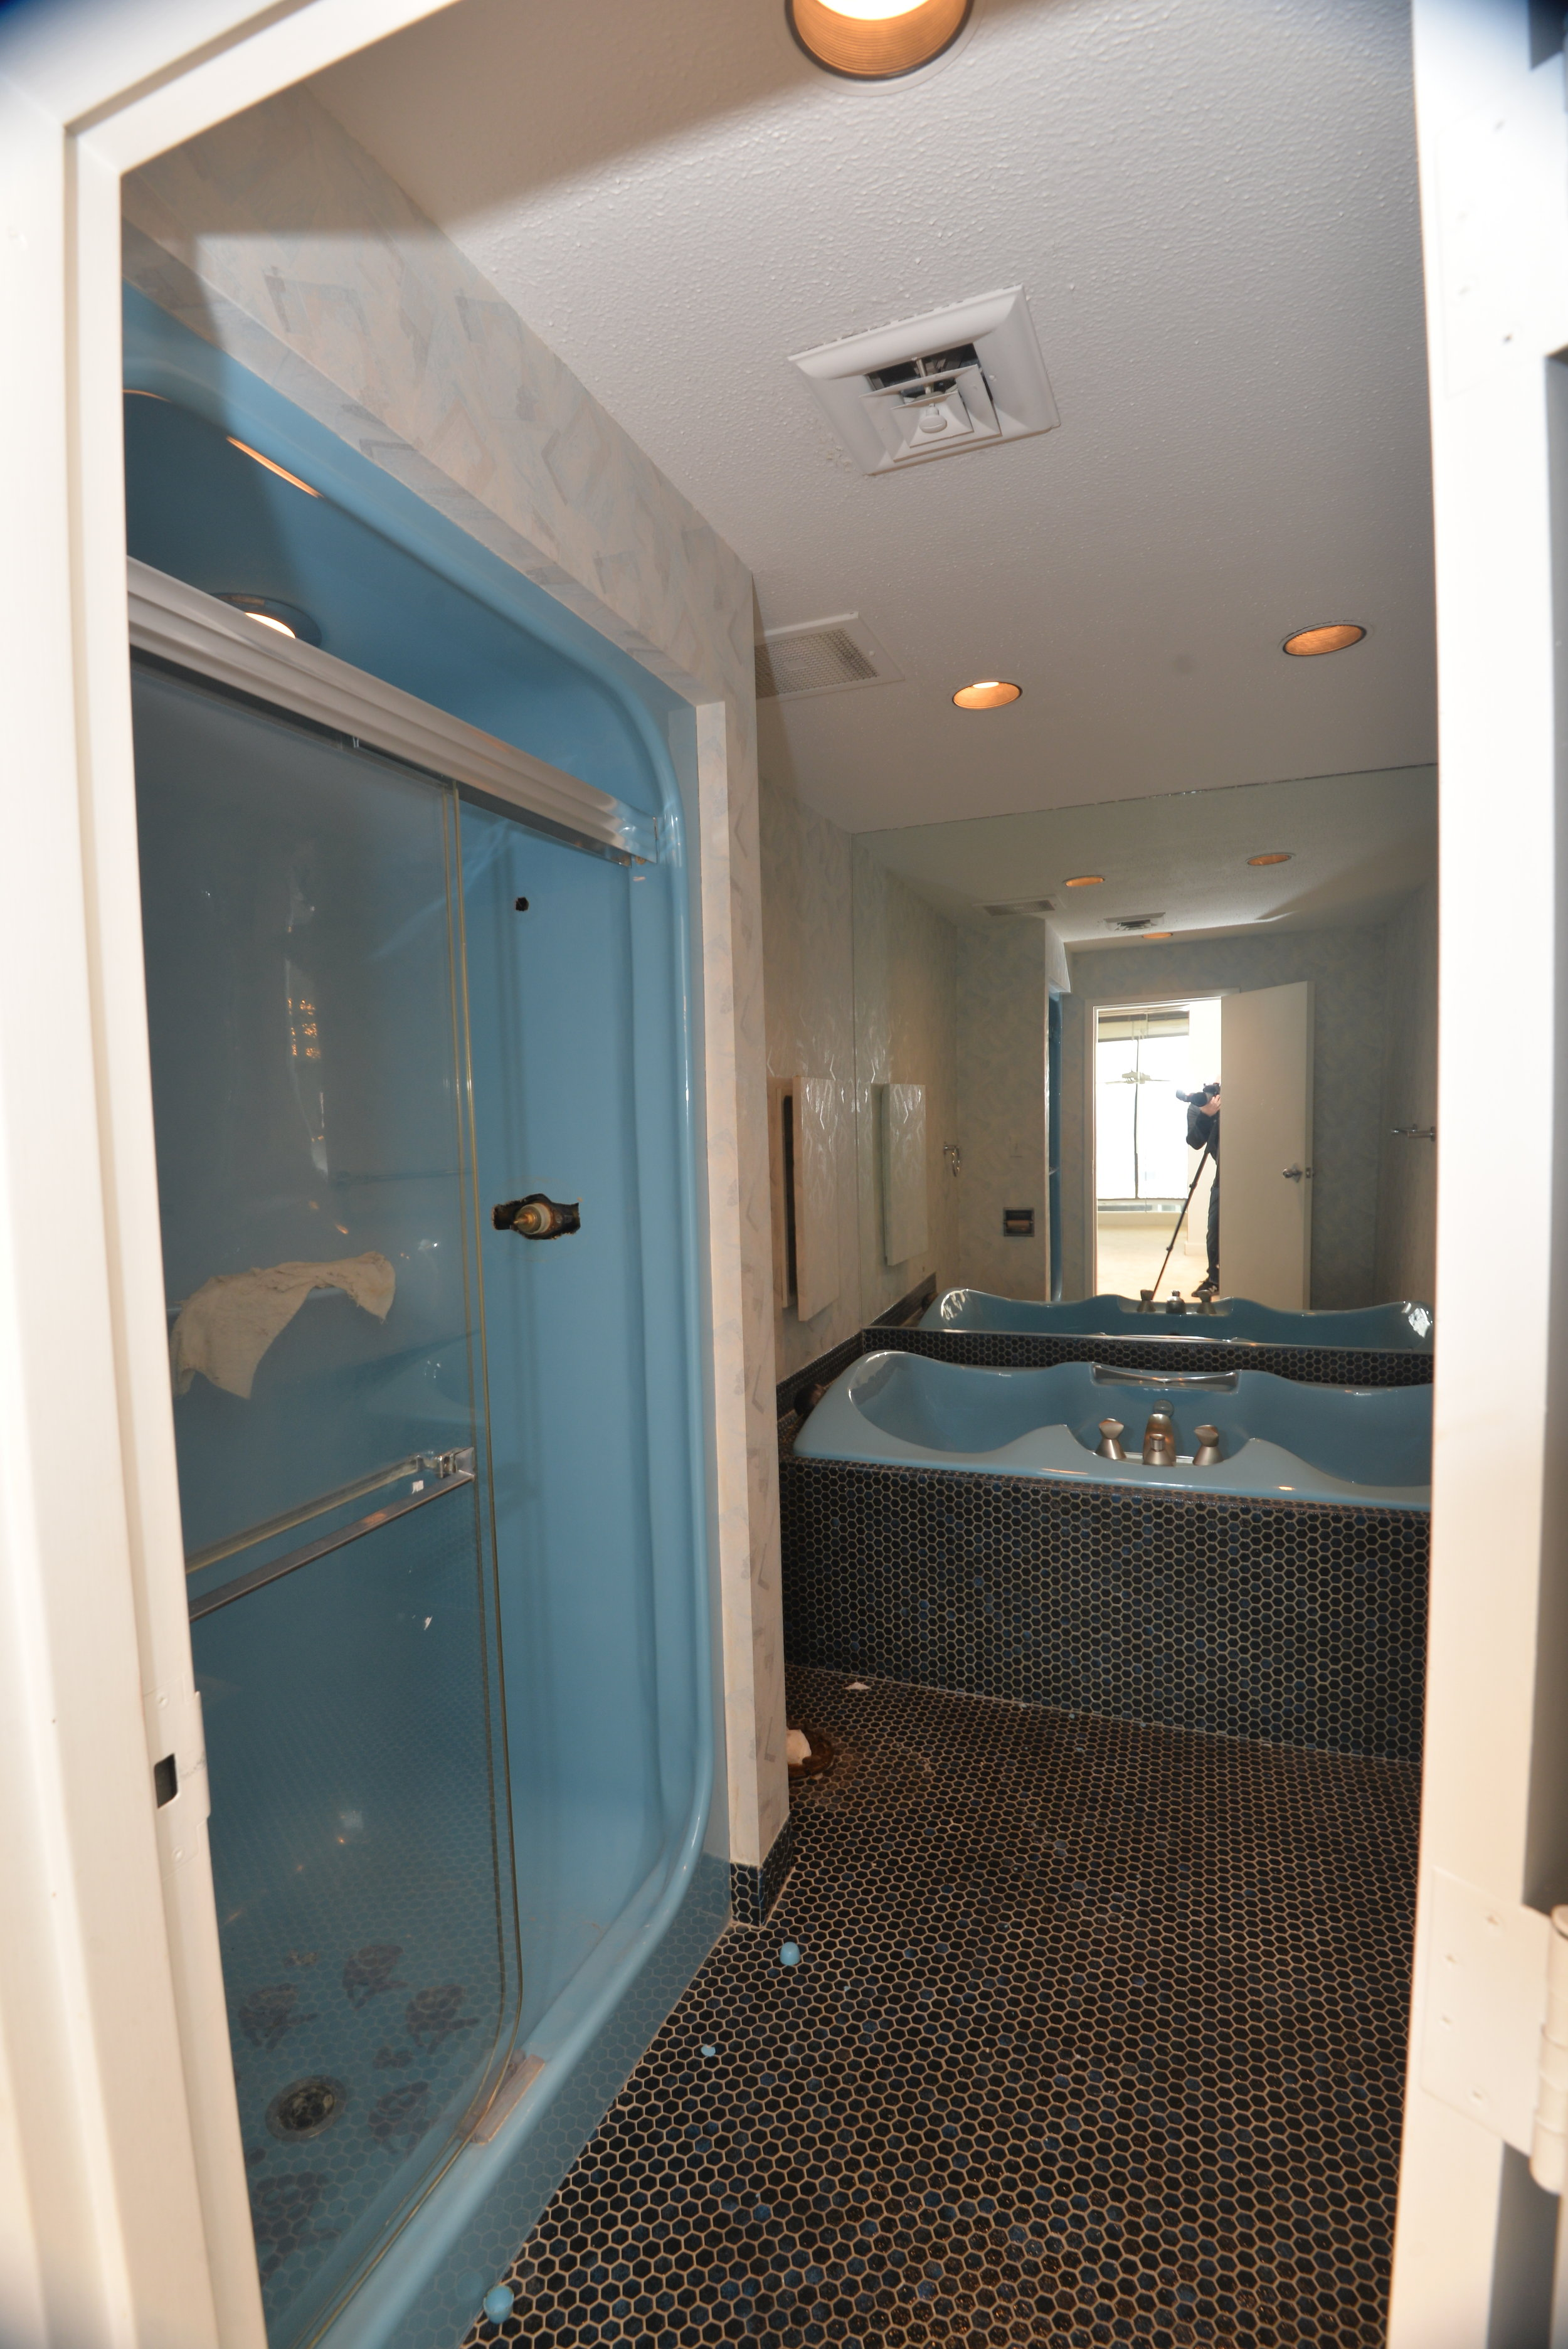 View of the old shower and tub.